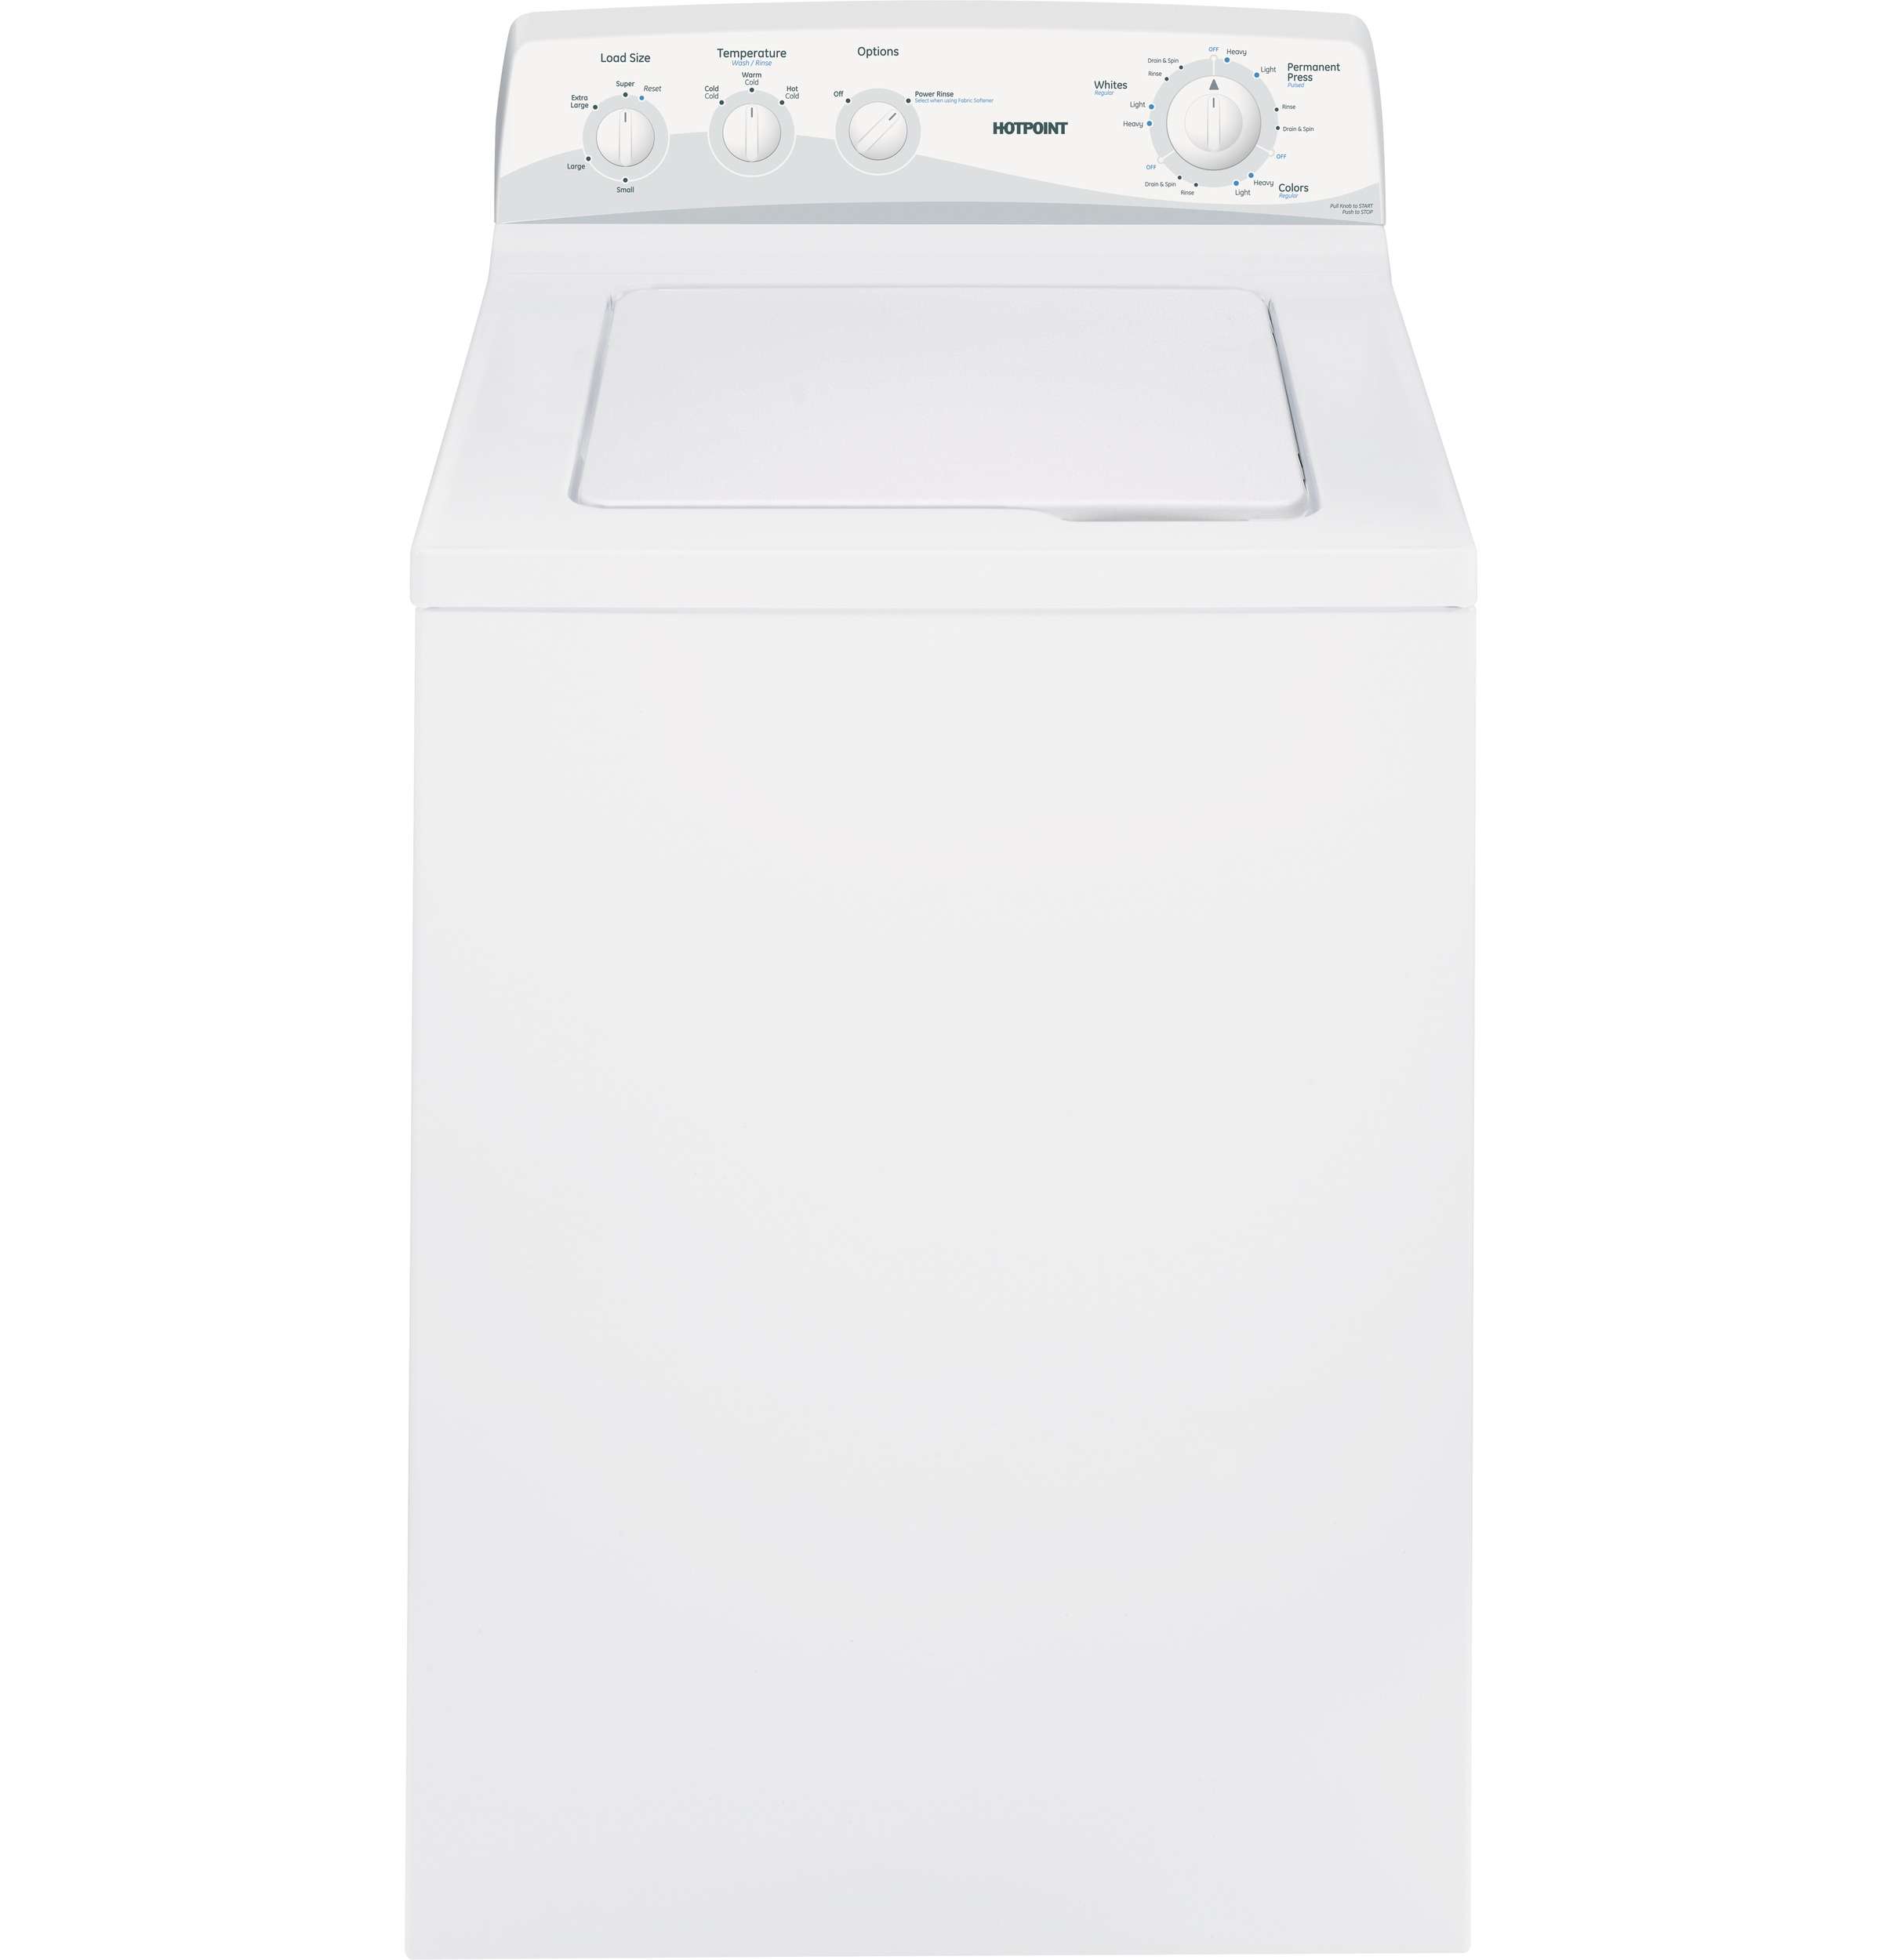 Hotpoint Washer Dryer Combo Hotpoint 37 Cuft Top Load Washing Machine White 8 Cycles